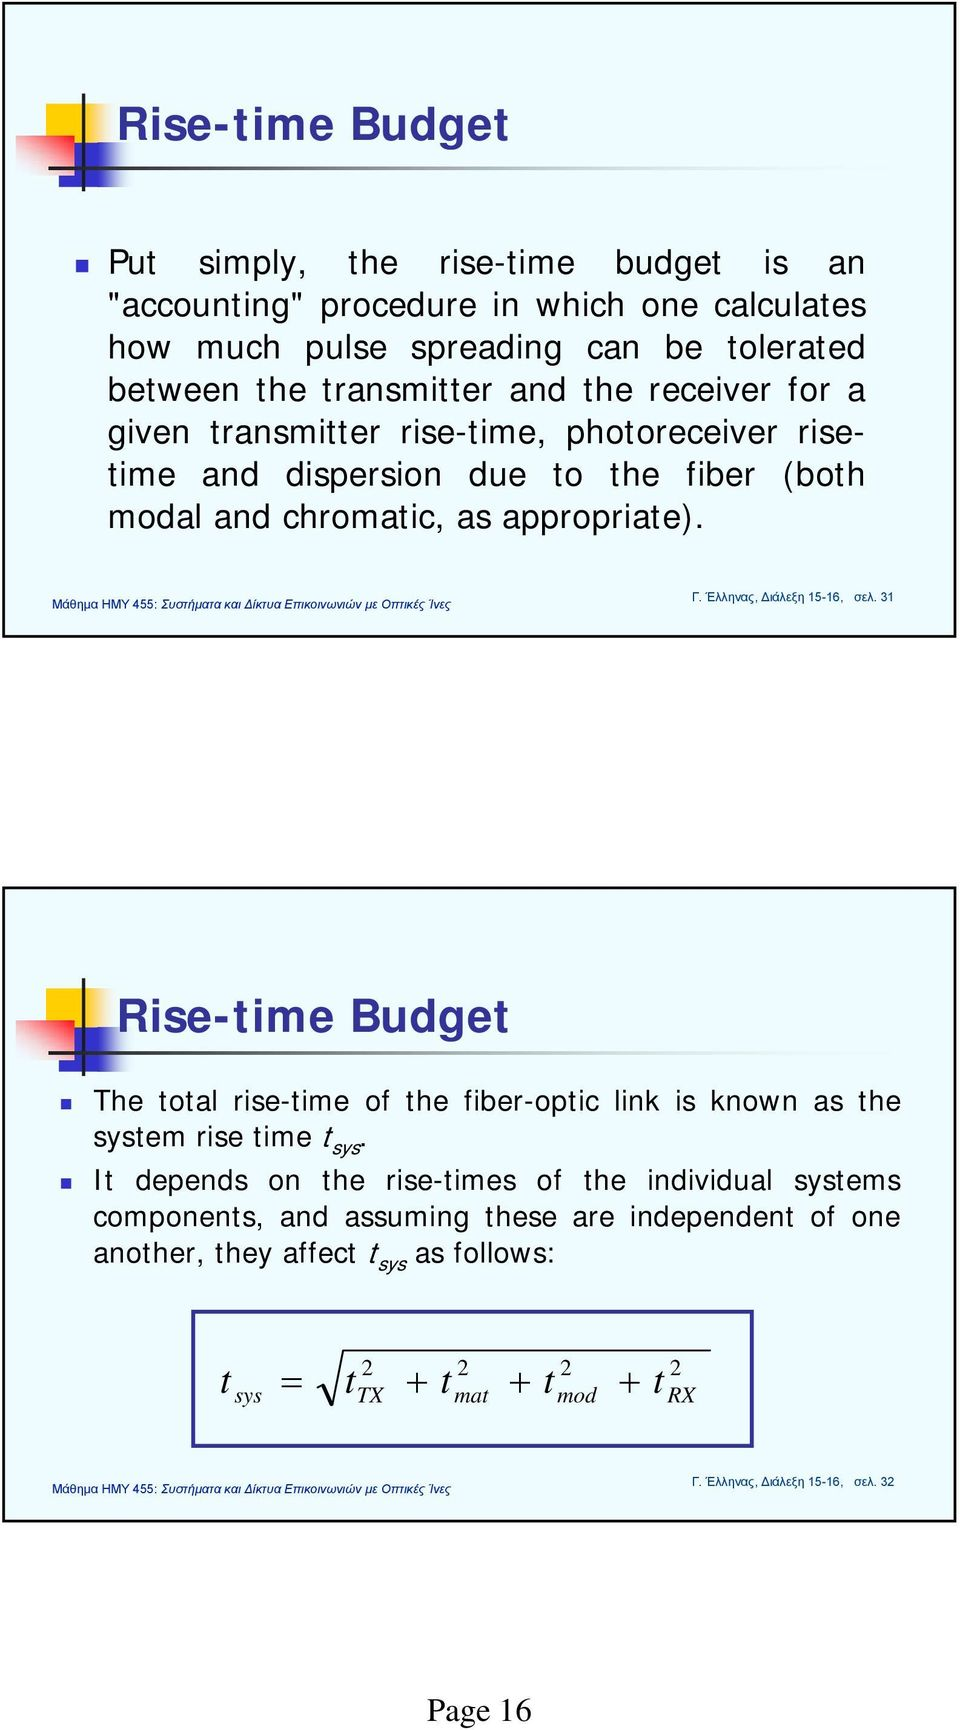 Έλληνας, Διάλεξη 15-16, σελ. 31 Rise-time Budget The total rise-time of the fiber-optic link is known as the system rise time t sys.